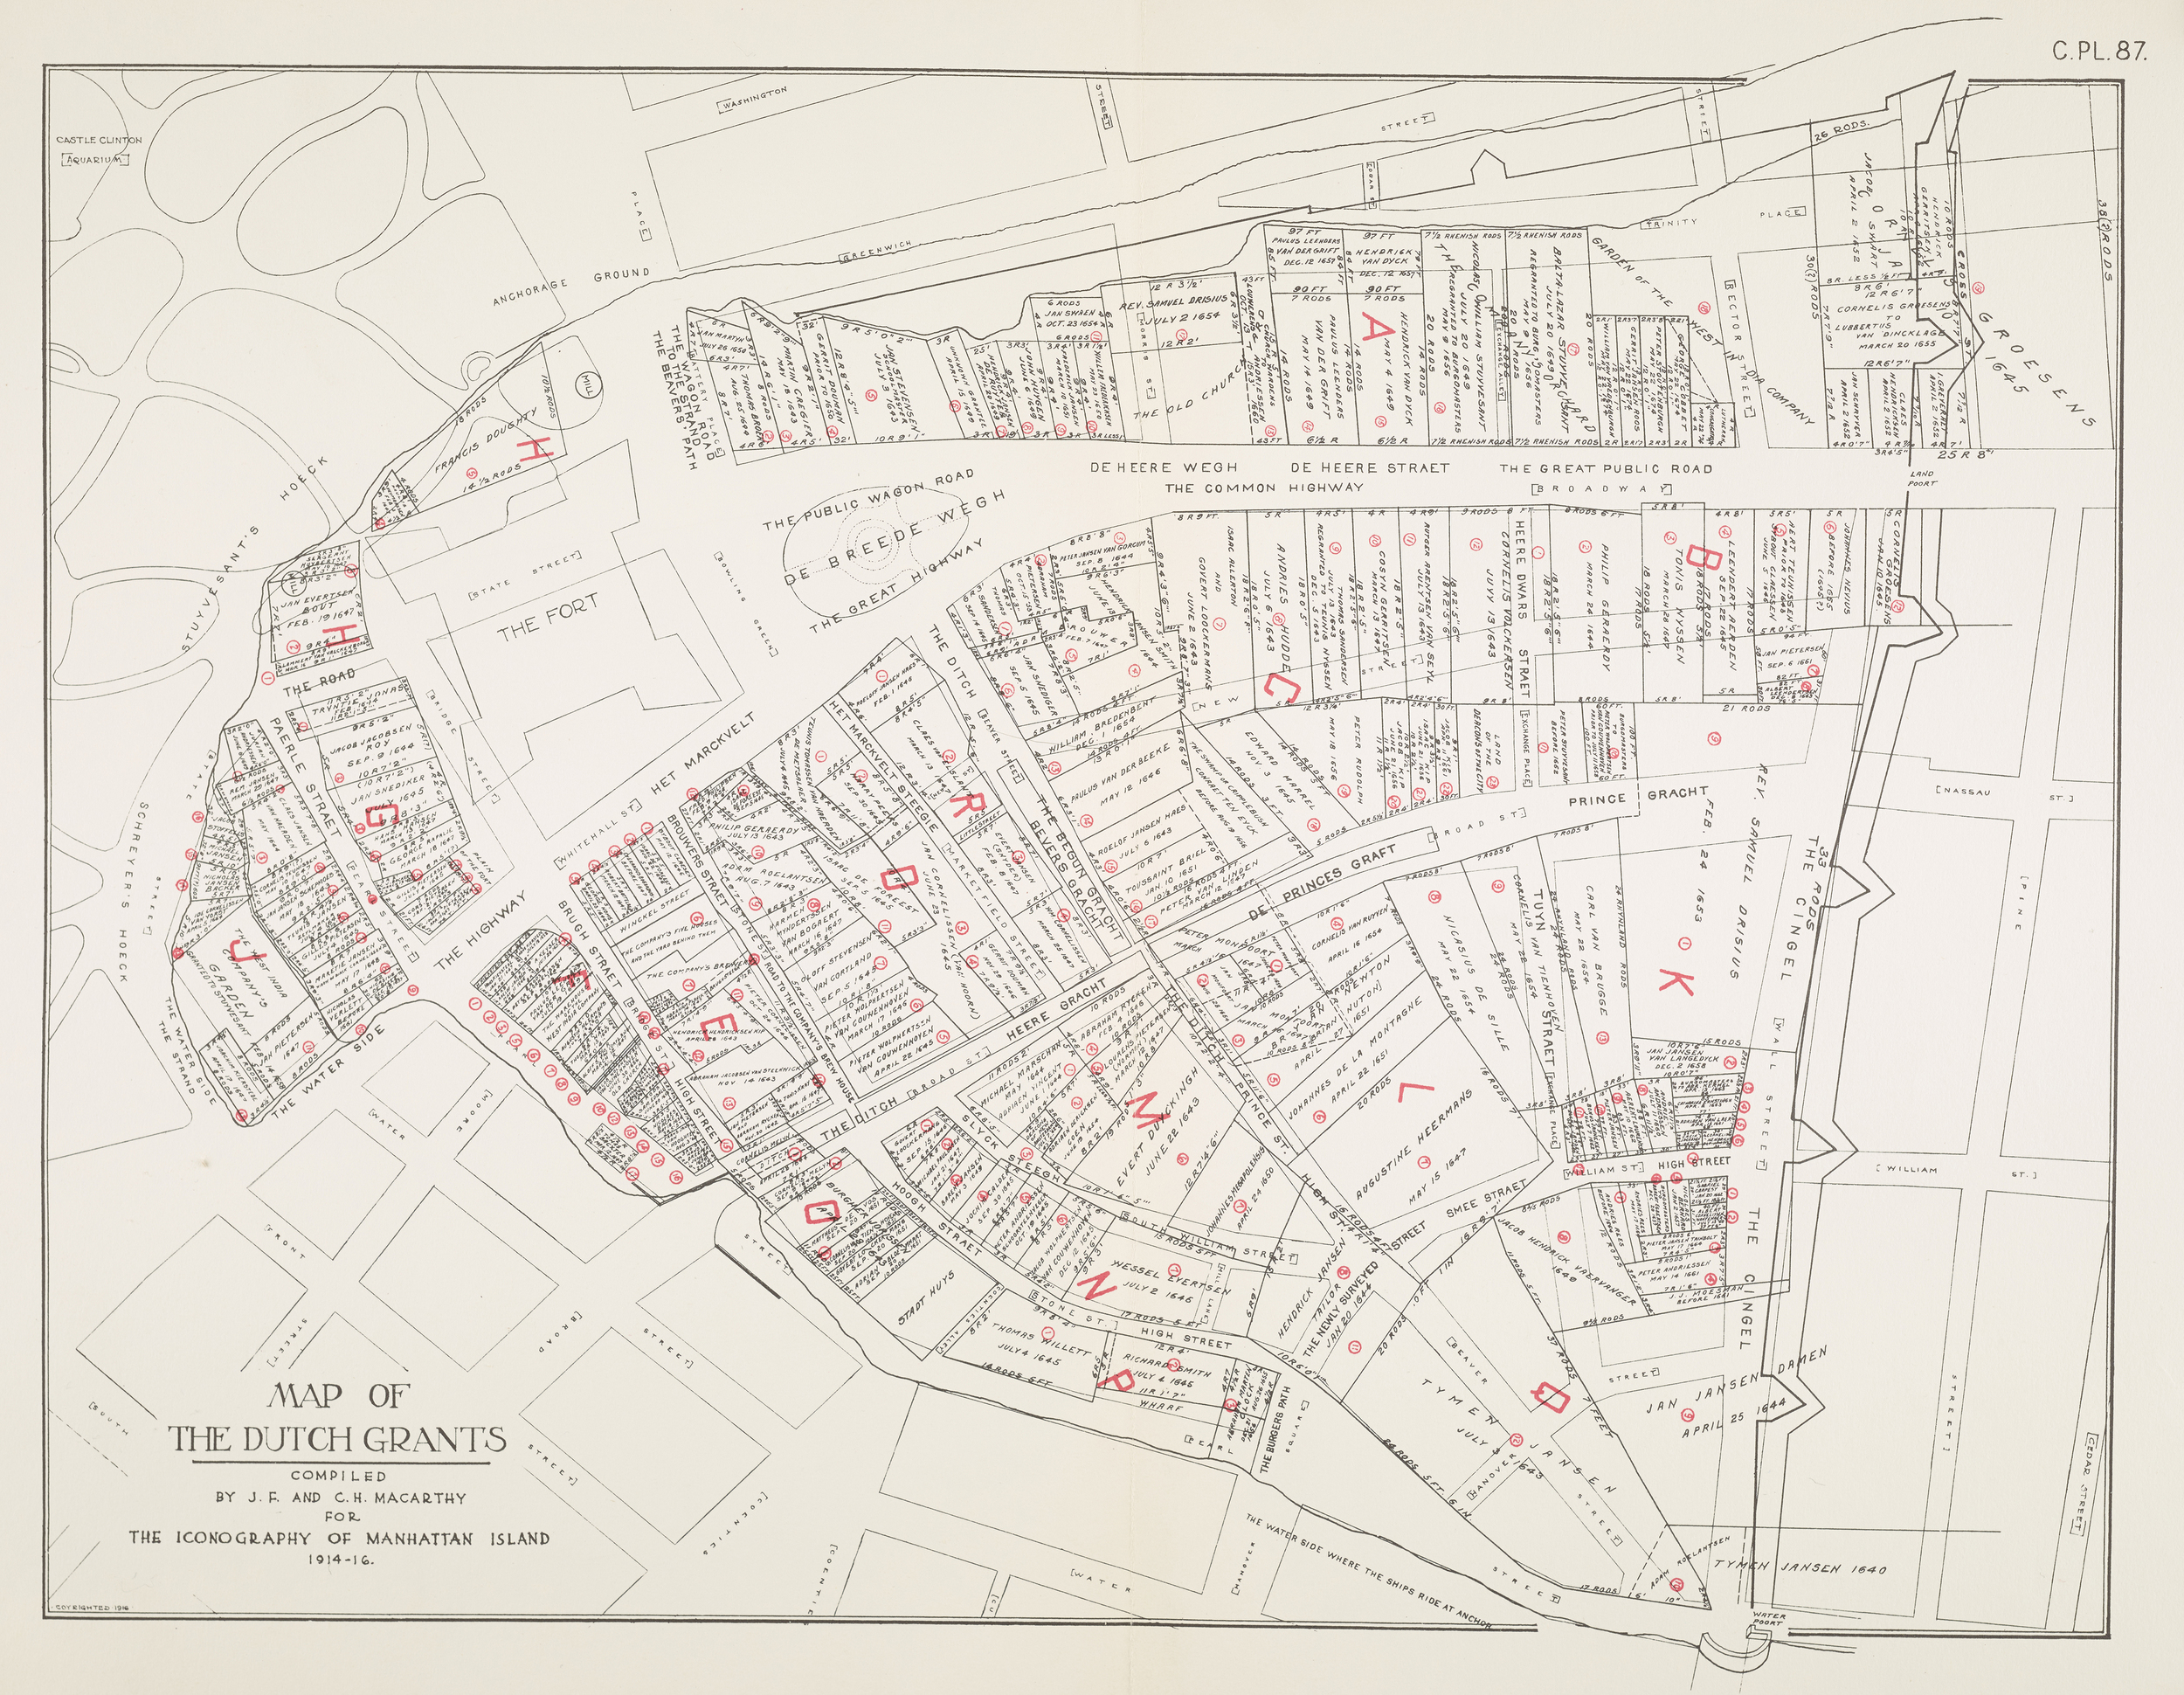 Map of the Dutch Grants, compiled by J.F. and C.H. Macarthy for the Iconography of Manhattan Island, 1914-1916.